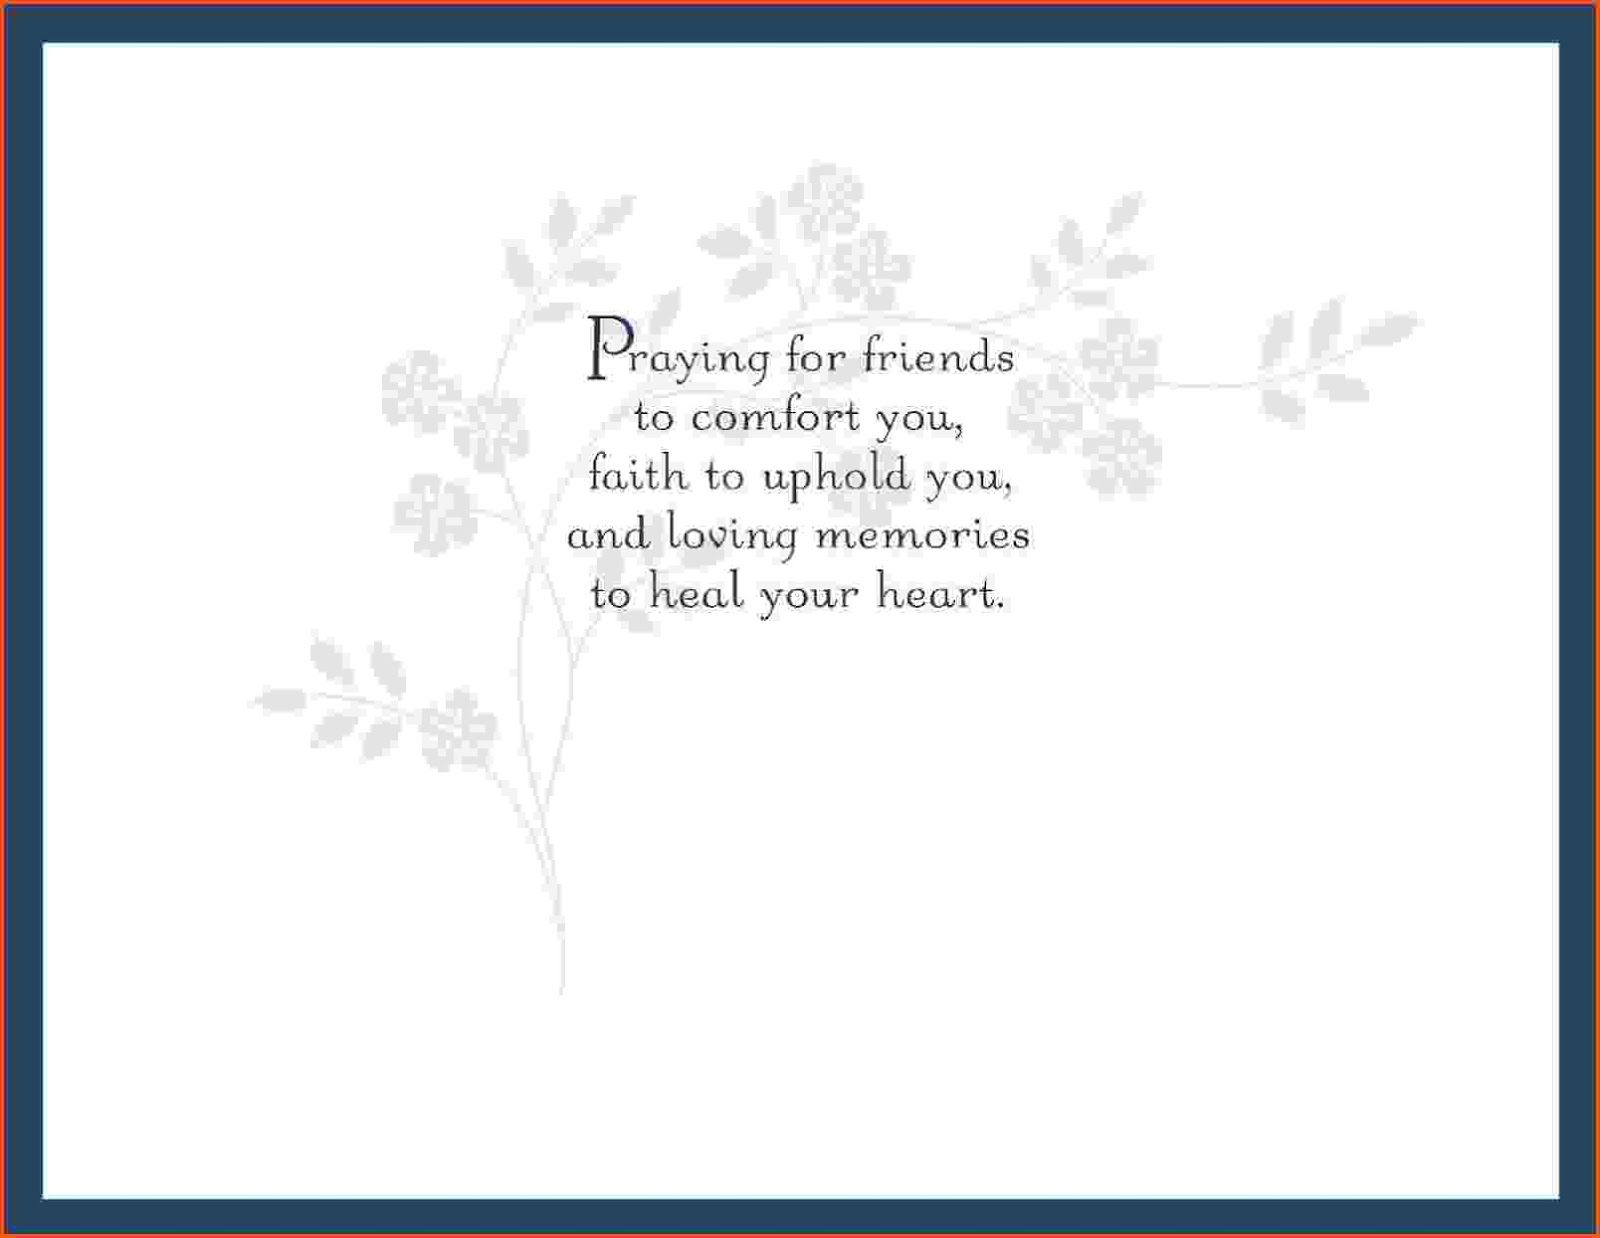 Best Wishes And Greetings 53 Condolence Sayings And Messages For Friends And Family Words For Sympathy Card Sympathy Cards Messages For Friends